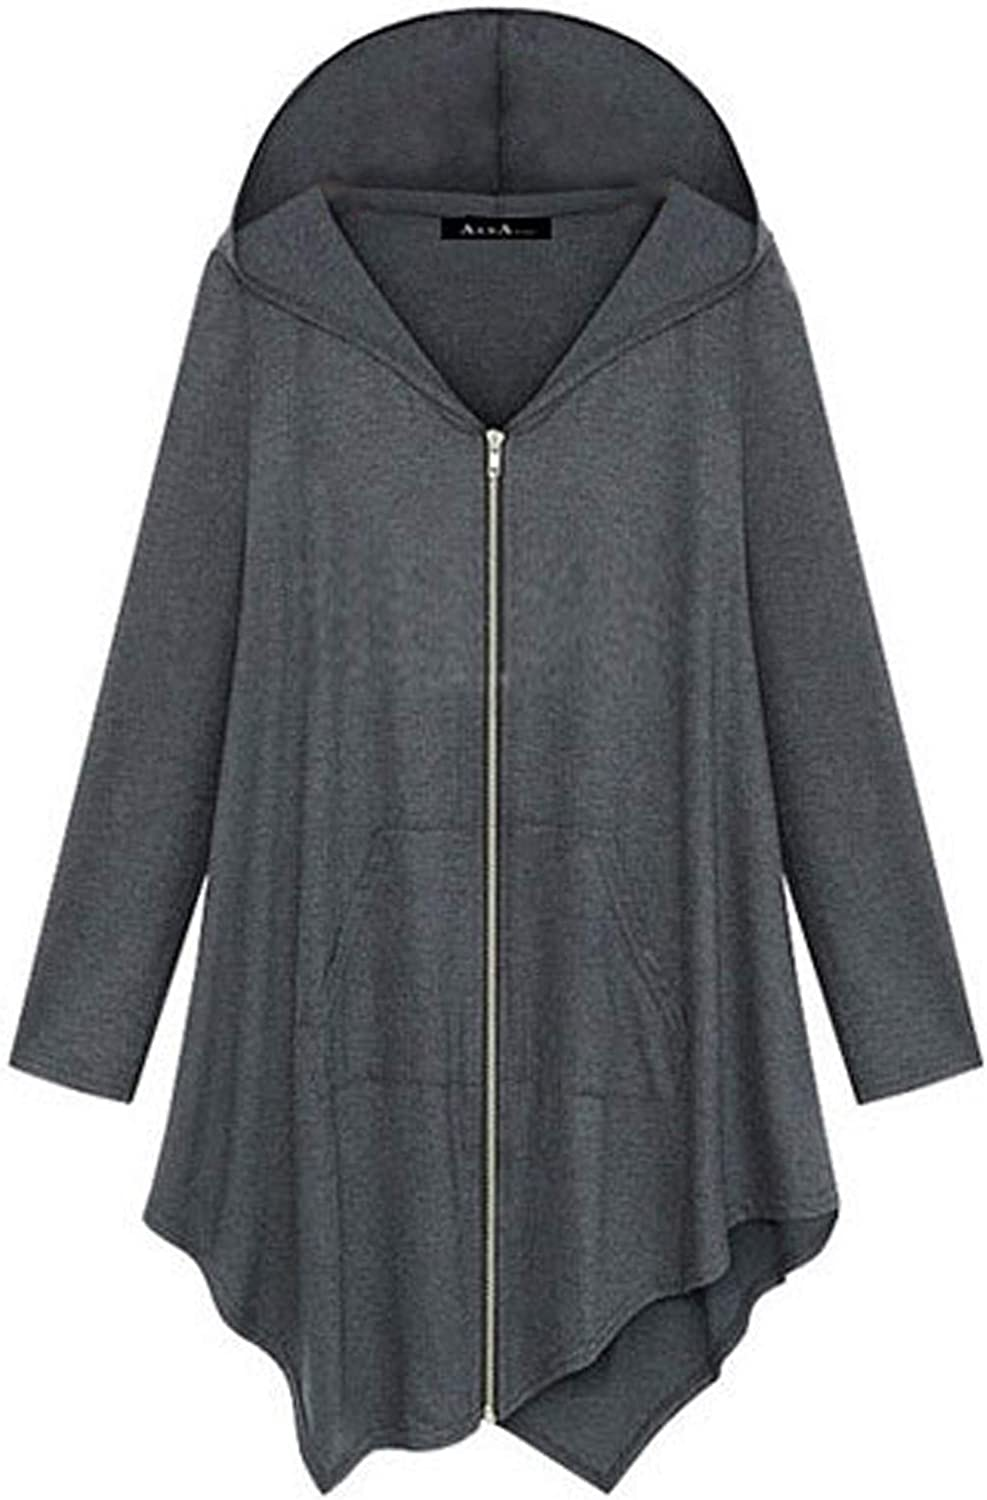 Women's Casual Solid Color Cardigan Mid-Length Loose Fit Zipper Hoodies Lightweight Long Sleeve Soft Pocket Blouse Tops